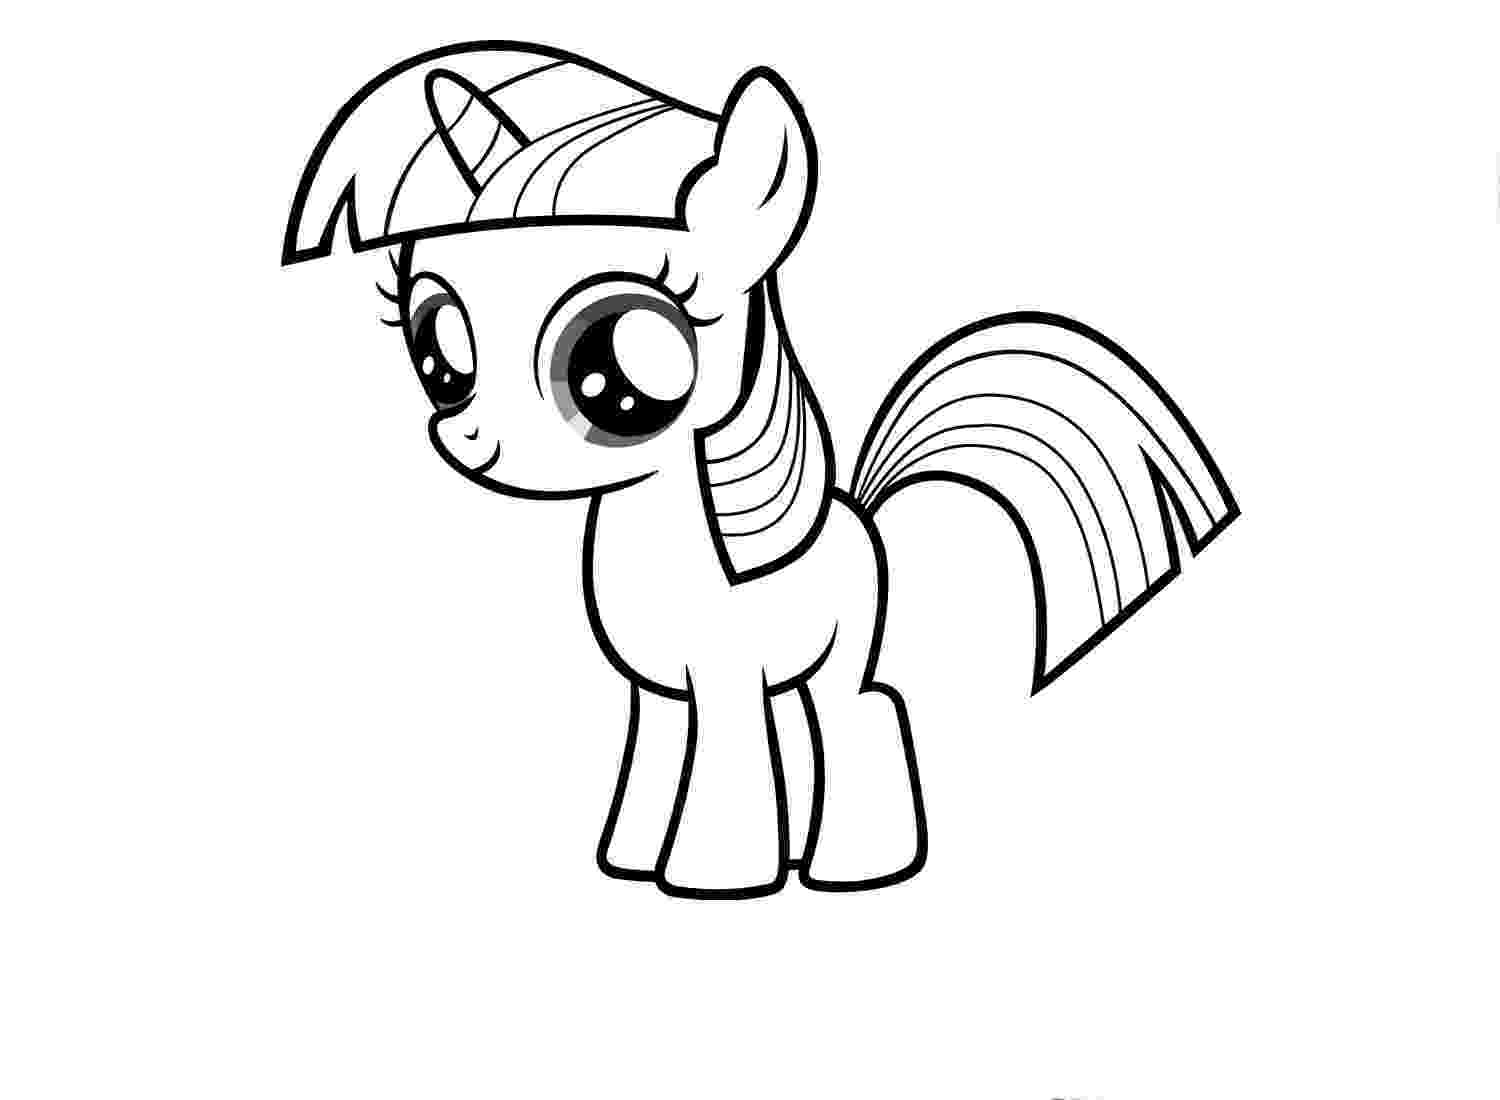 coloring pages twilight sparkle twilight sparkle coloring pages to download and print for free pages coloring twilight sparkle